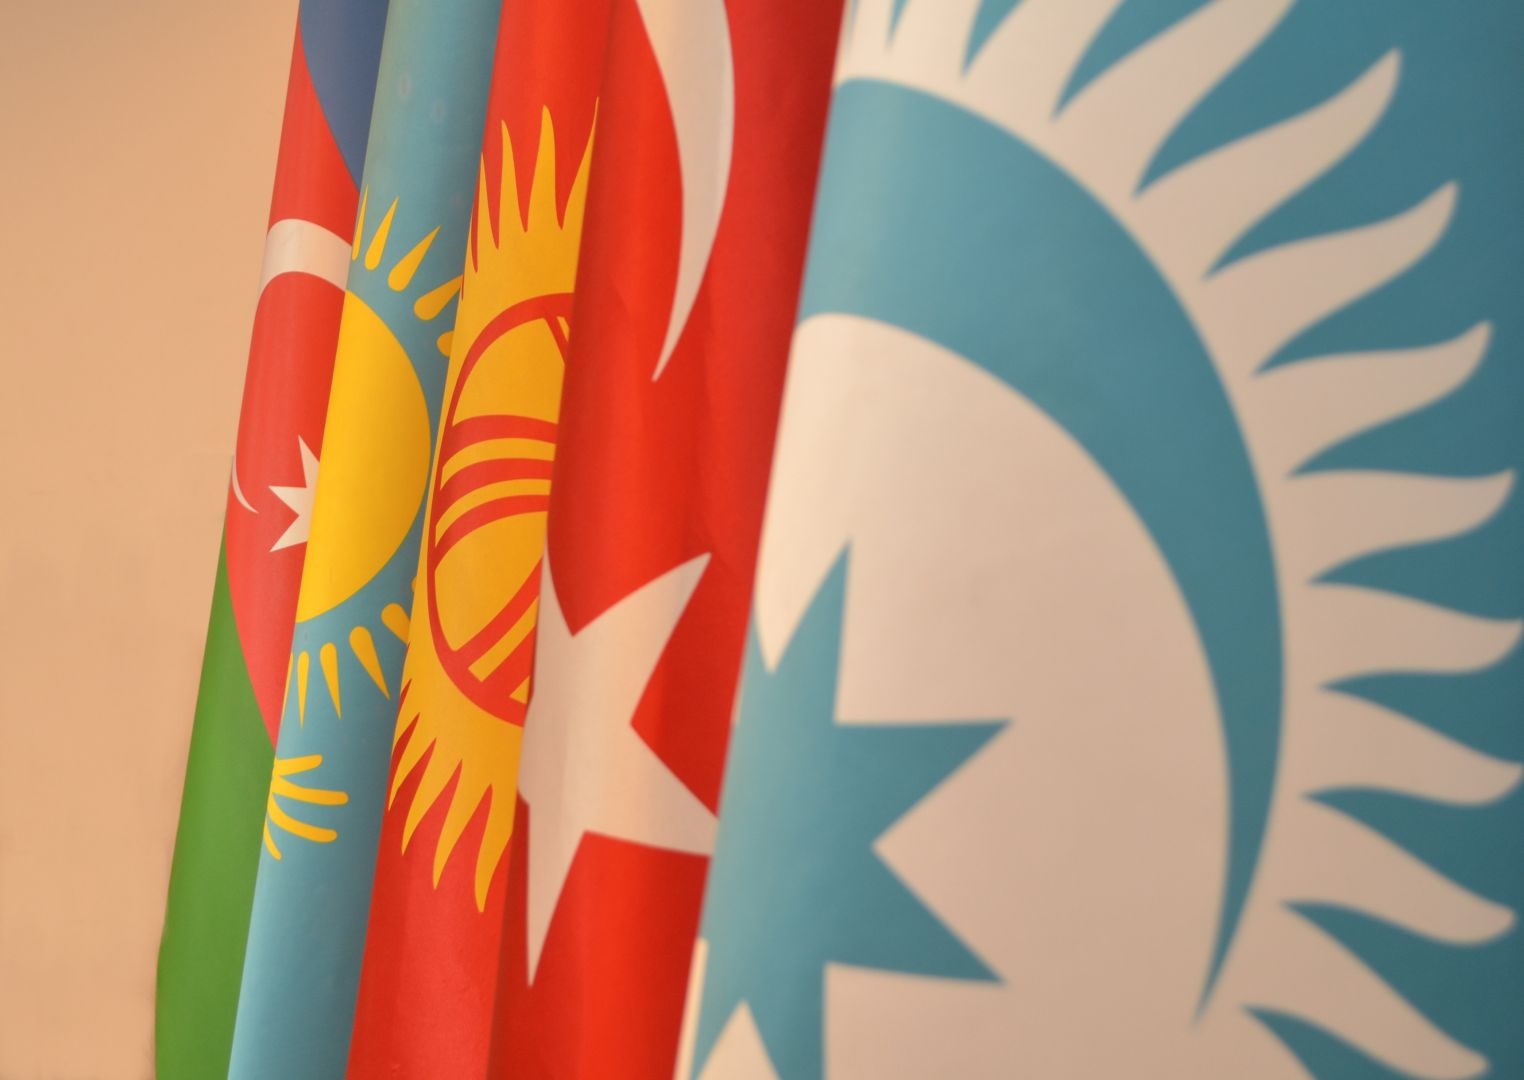 Turkic Council Member States show profound spirit of collaboration in fight against COVID-19 pandemic